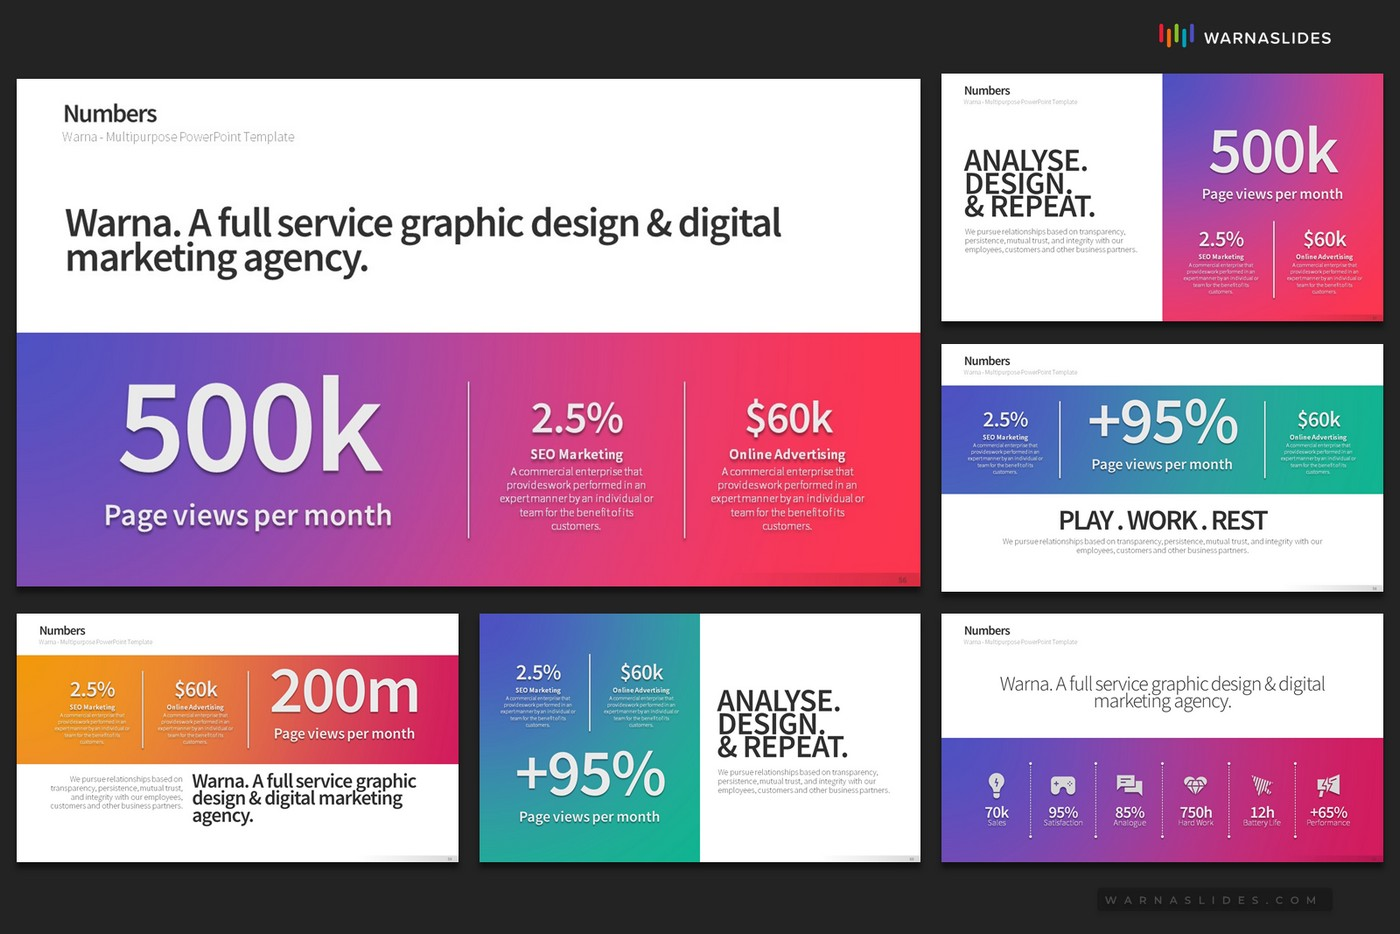 Data-Infographic-Demographic-PowerPoint-Template-for-Business-Pitch-Deck-Professional-Creative-PowerPoint-Icons-012